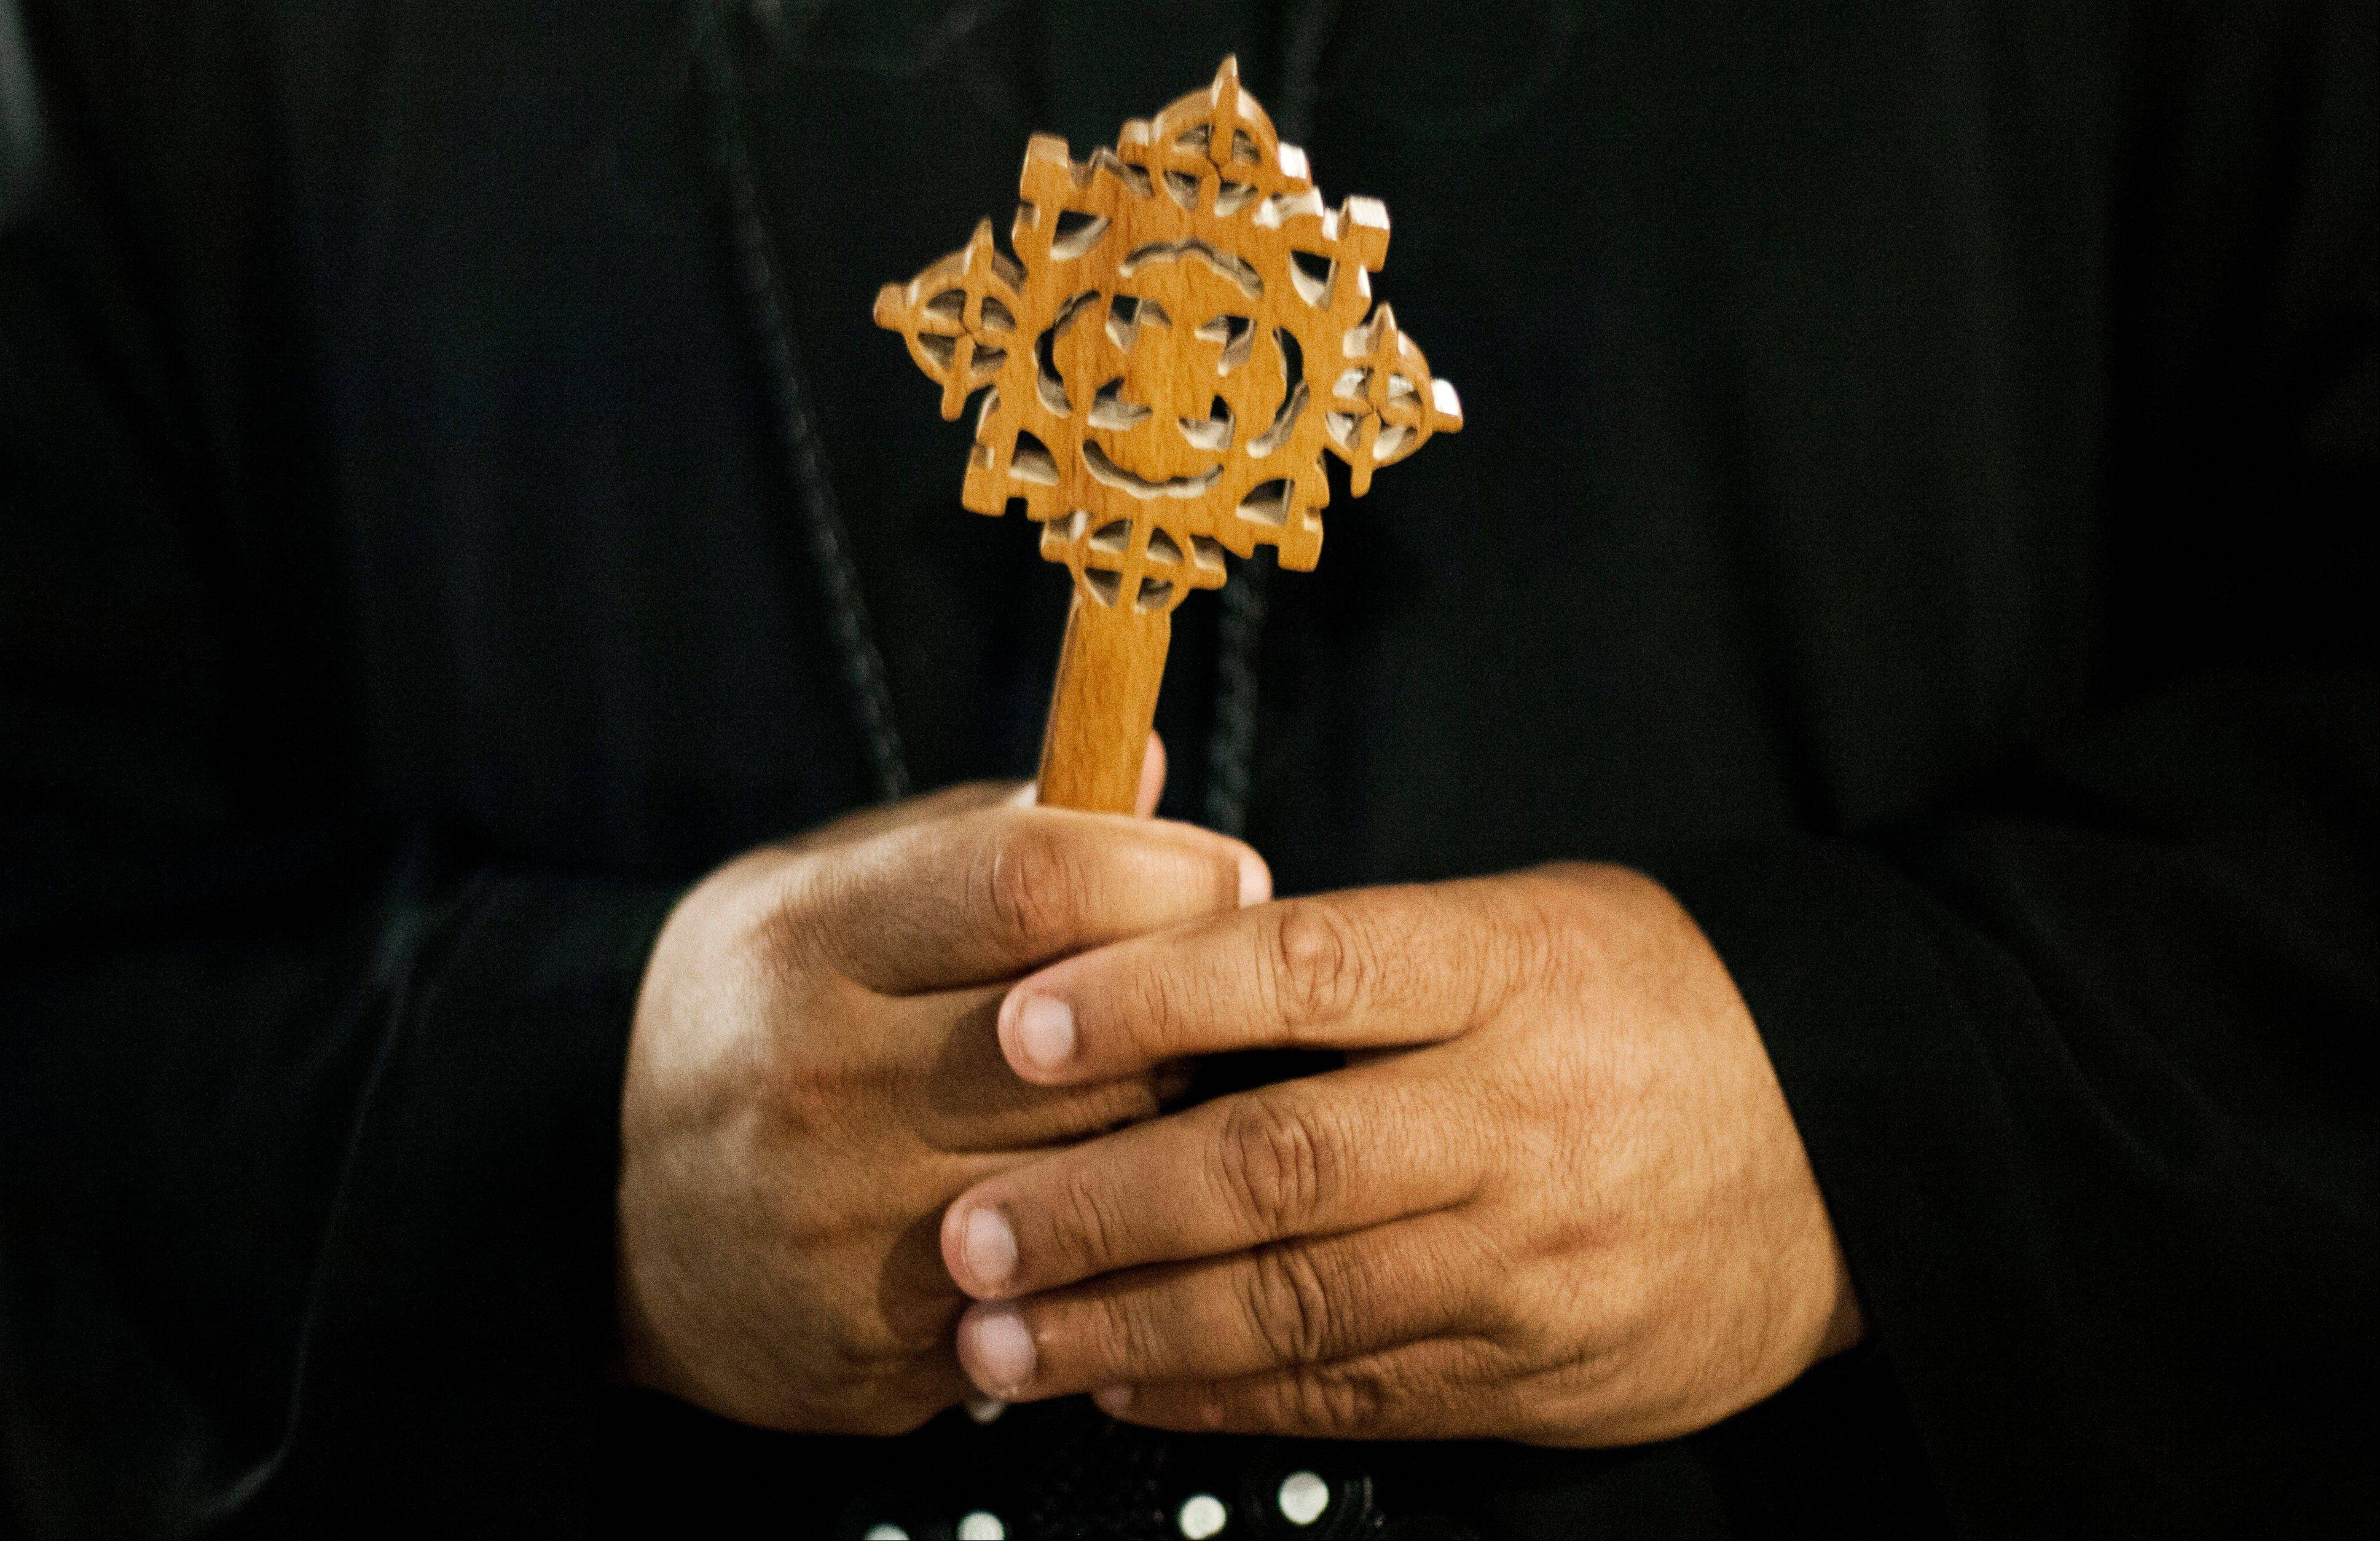 A Coptic Christian monk holds a Coptic cross at Al-Mahraq monastery during the preparation of a religious festival in Assiut, Egypt. Islamists have stepped up a hate campaign against the area's Christians.